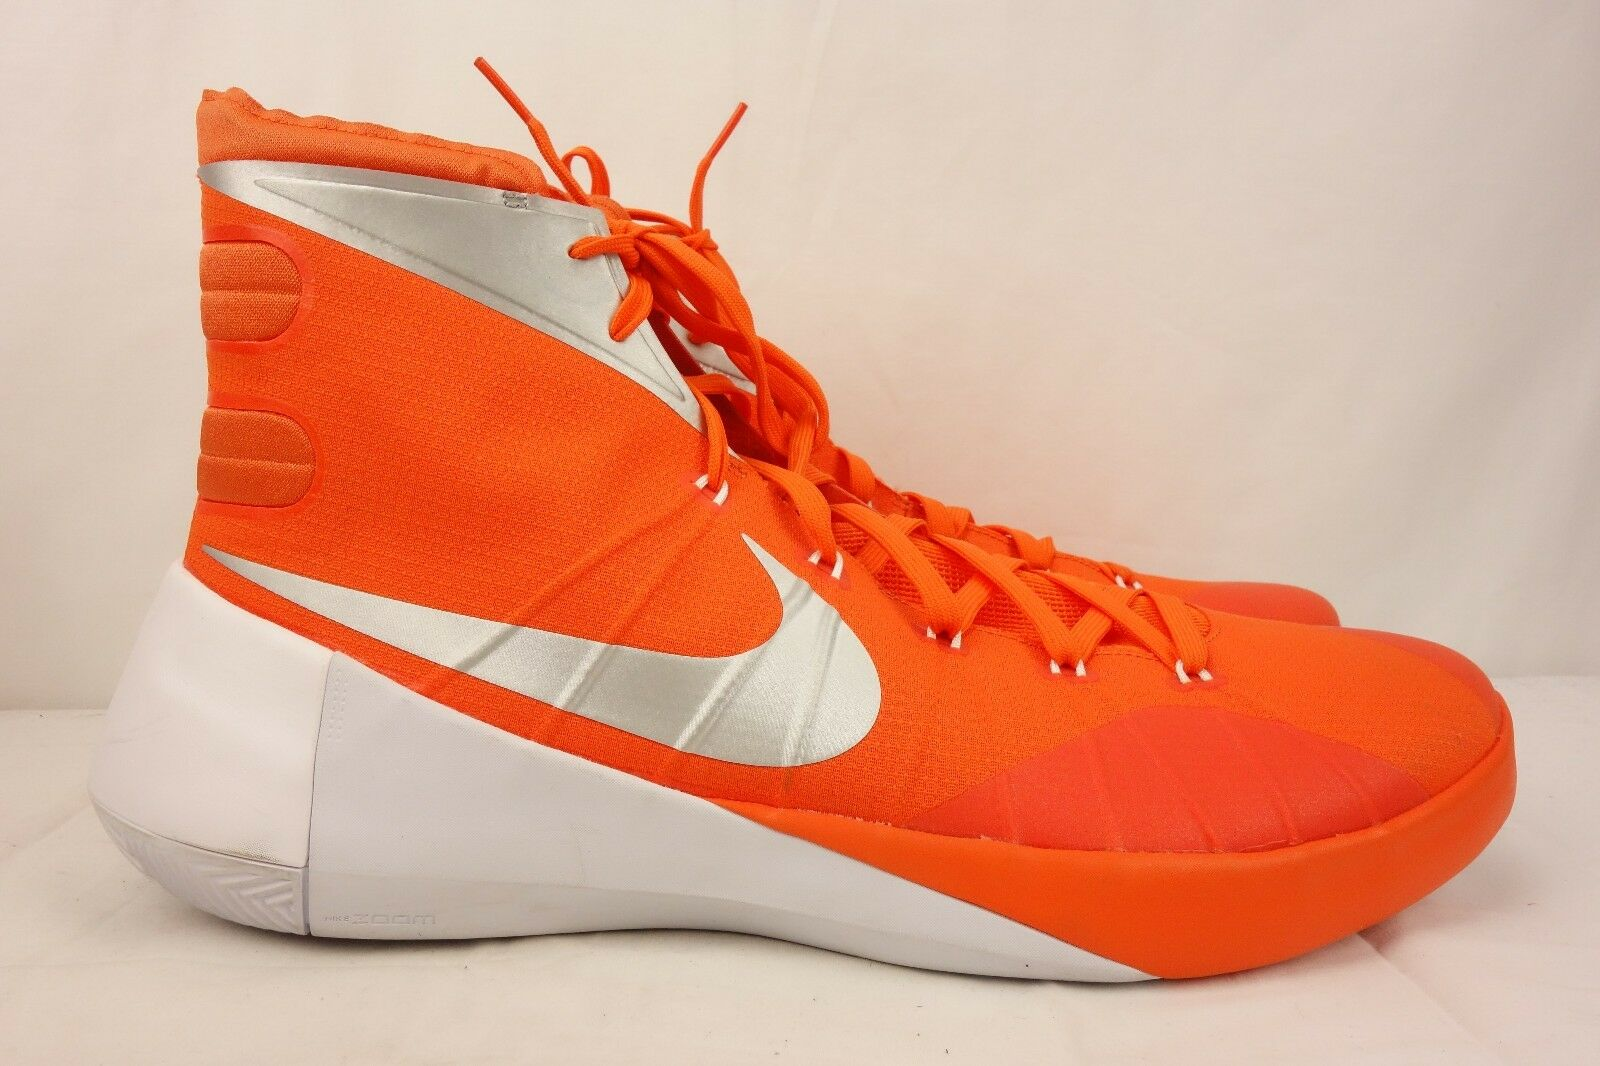 NEW NIKE Hyperdunk Basketball Game Shoes Men's 17.5 M Game Basketball Orange 812944-801 d4be85